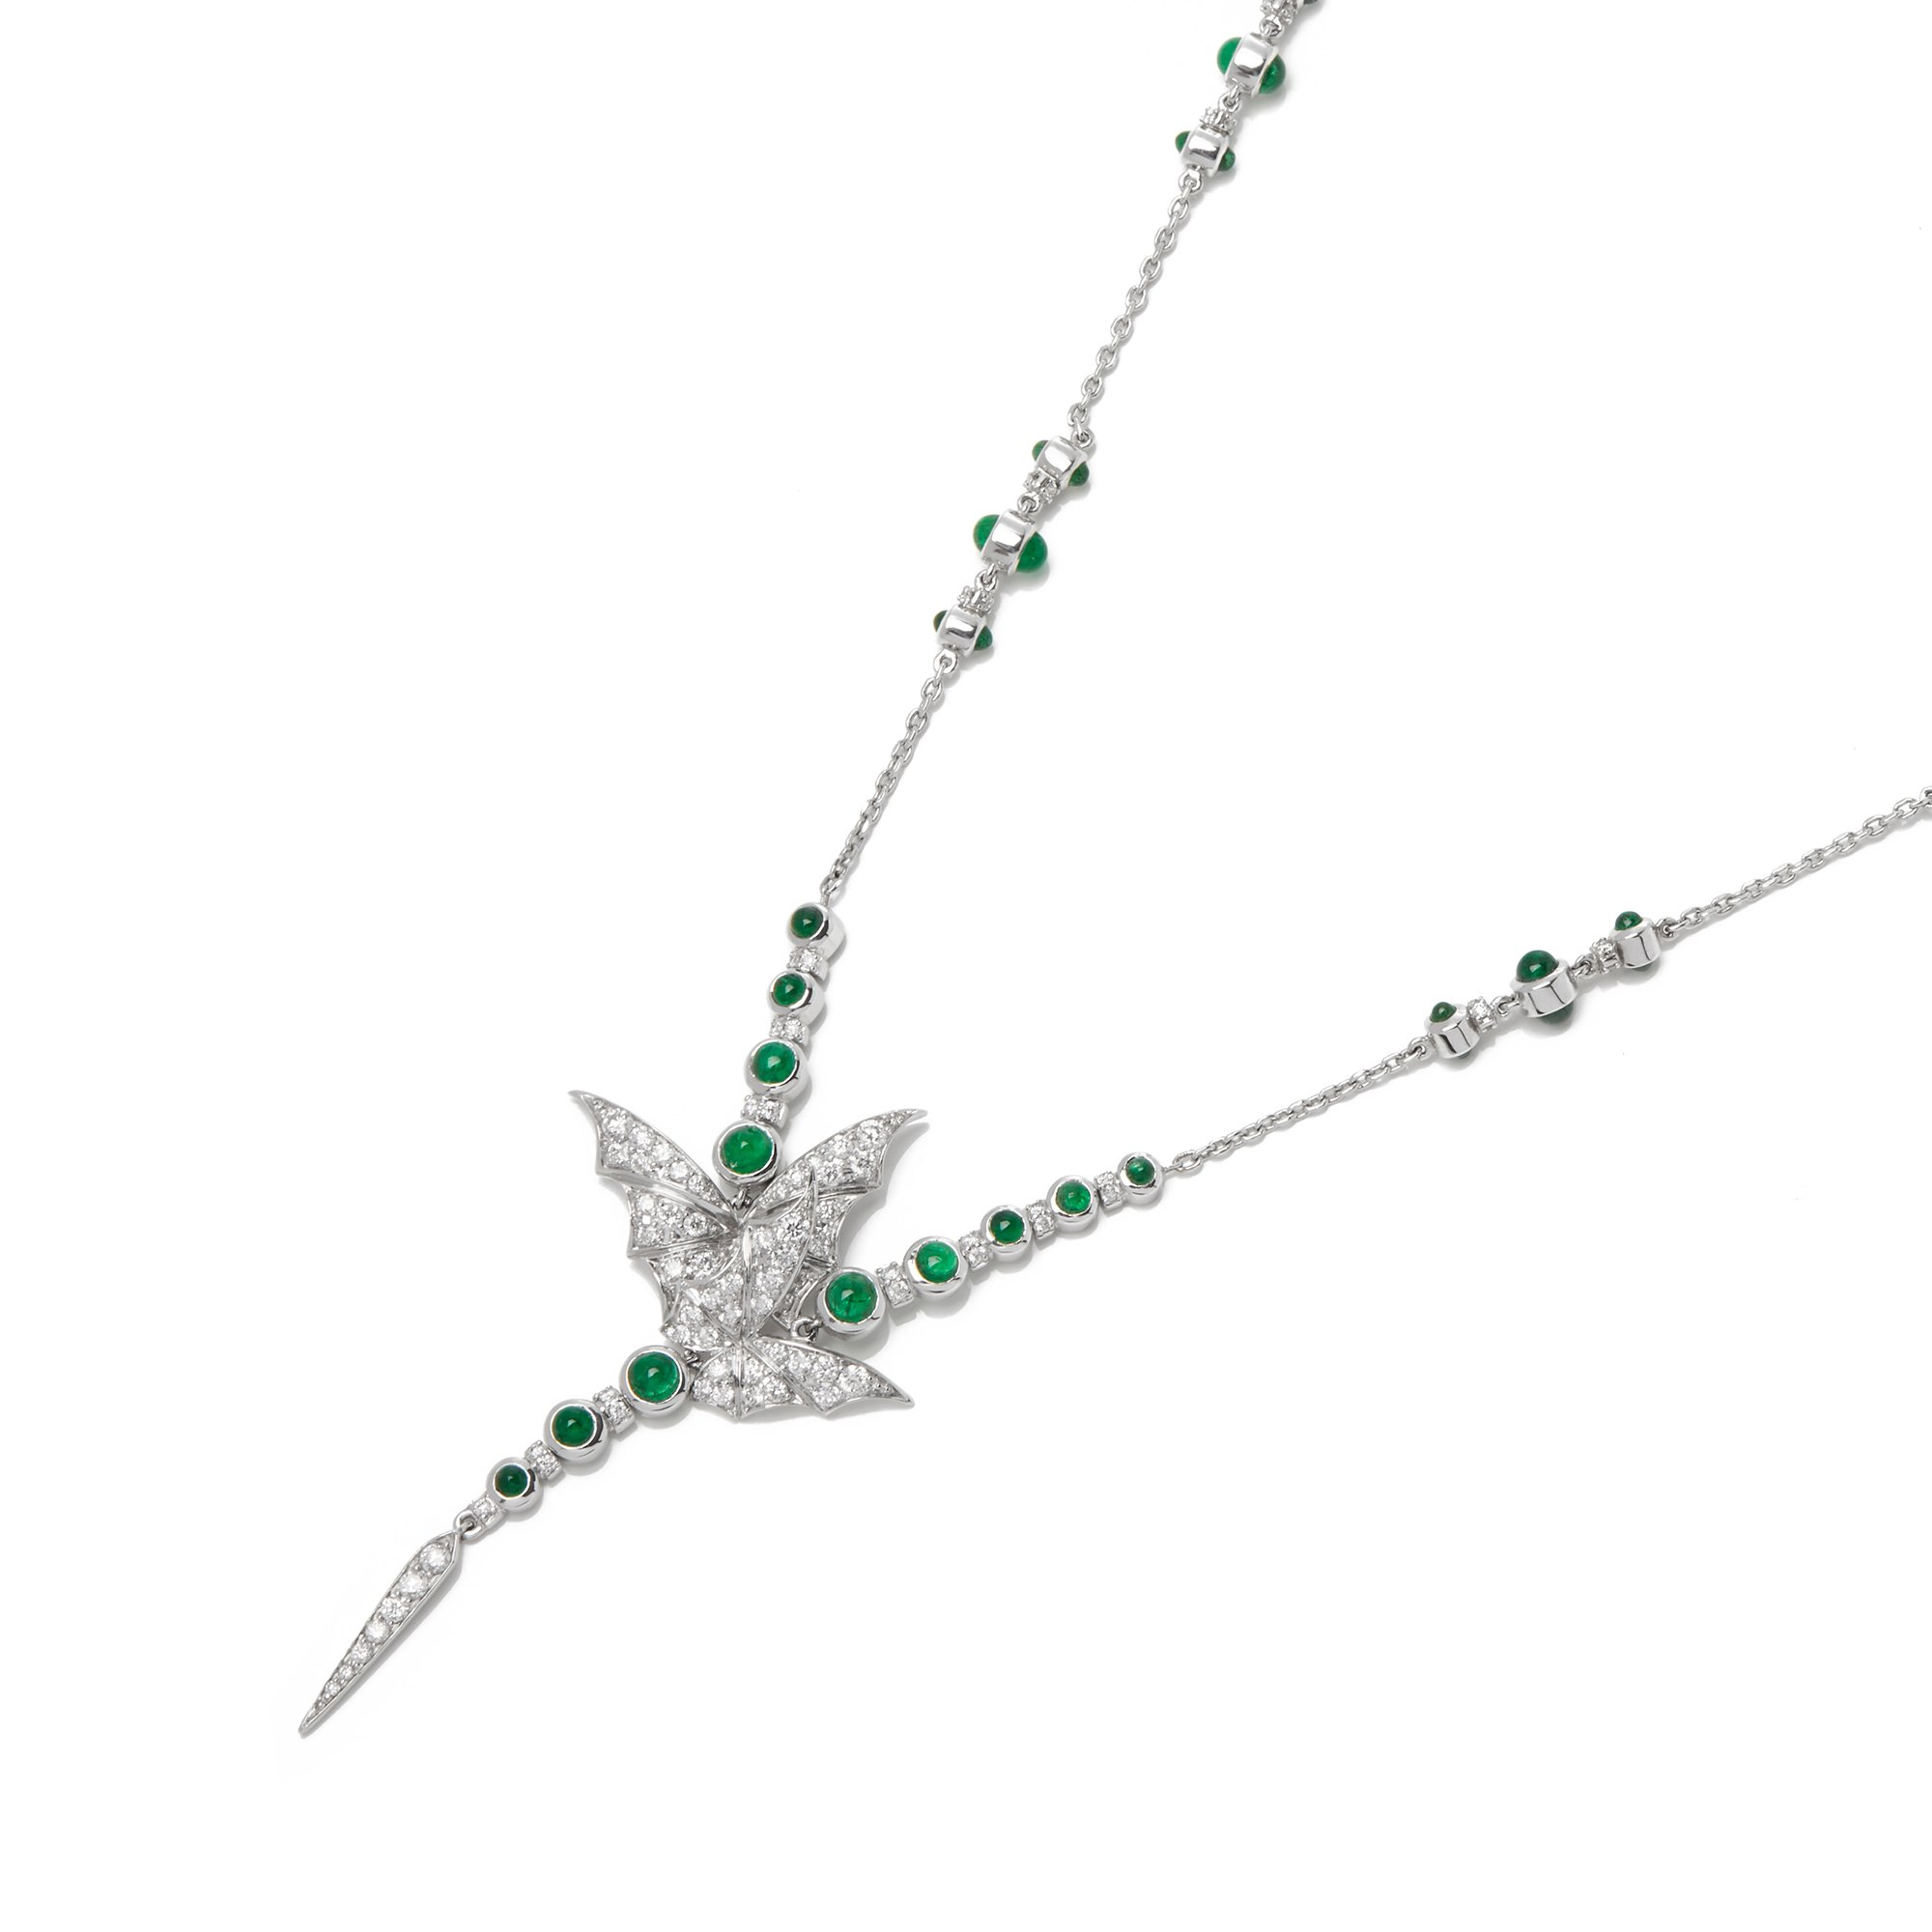 Stephen Webster Fly by Night 18ct Gold Diamond and Emerald necklace